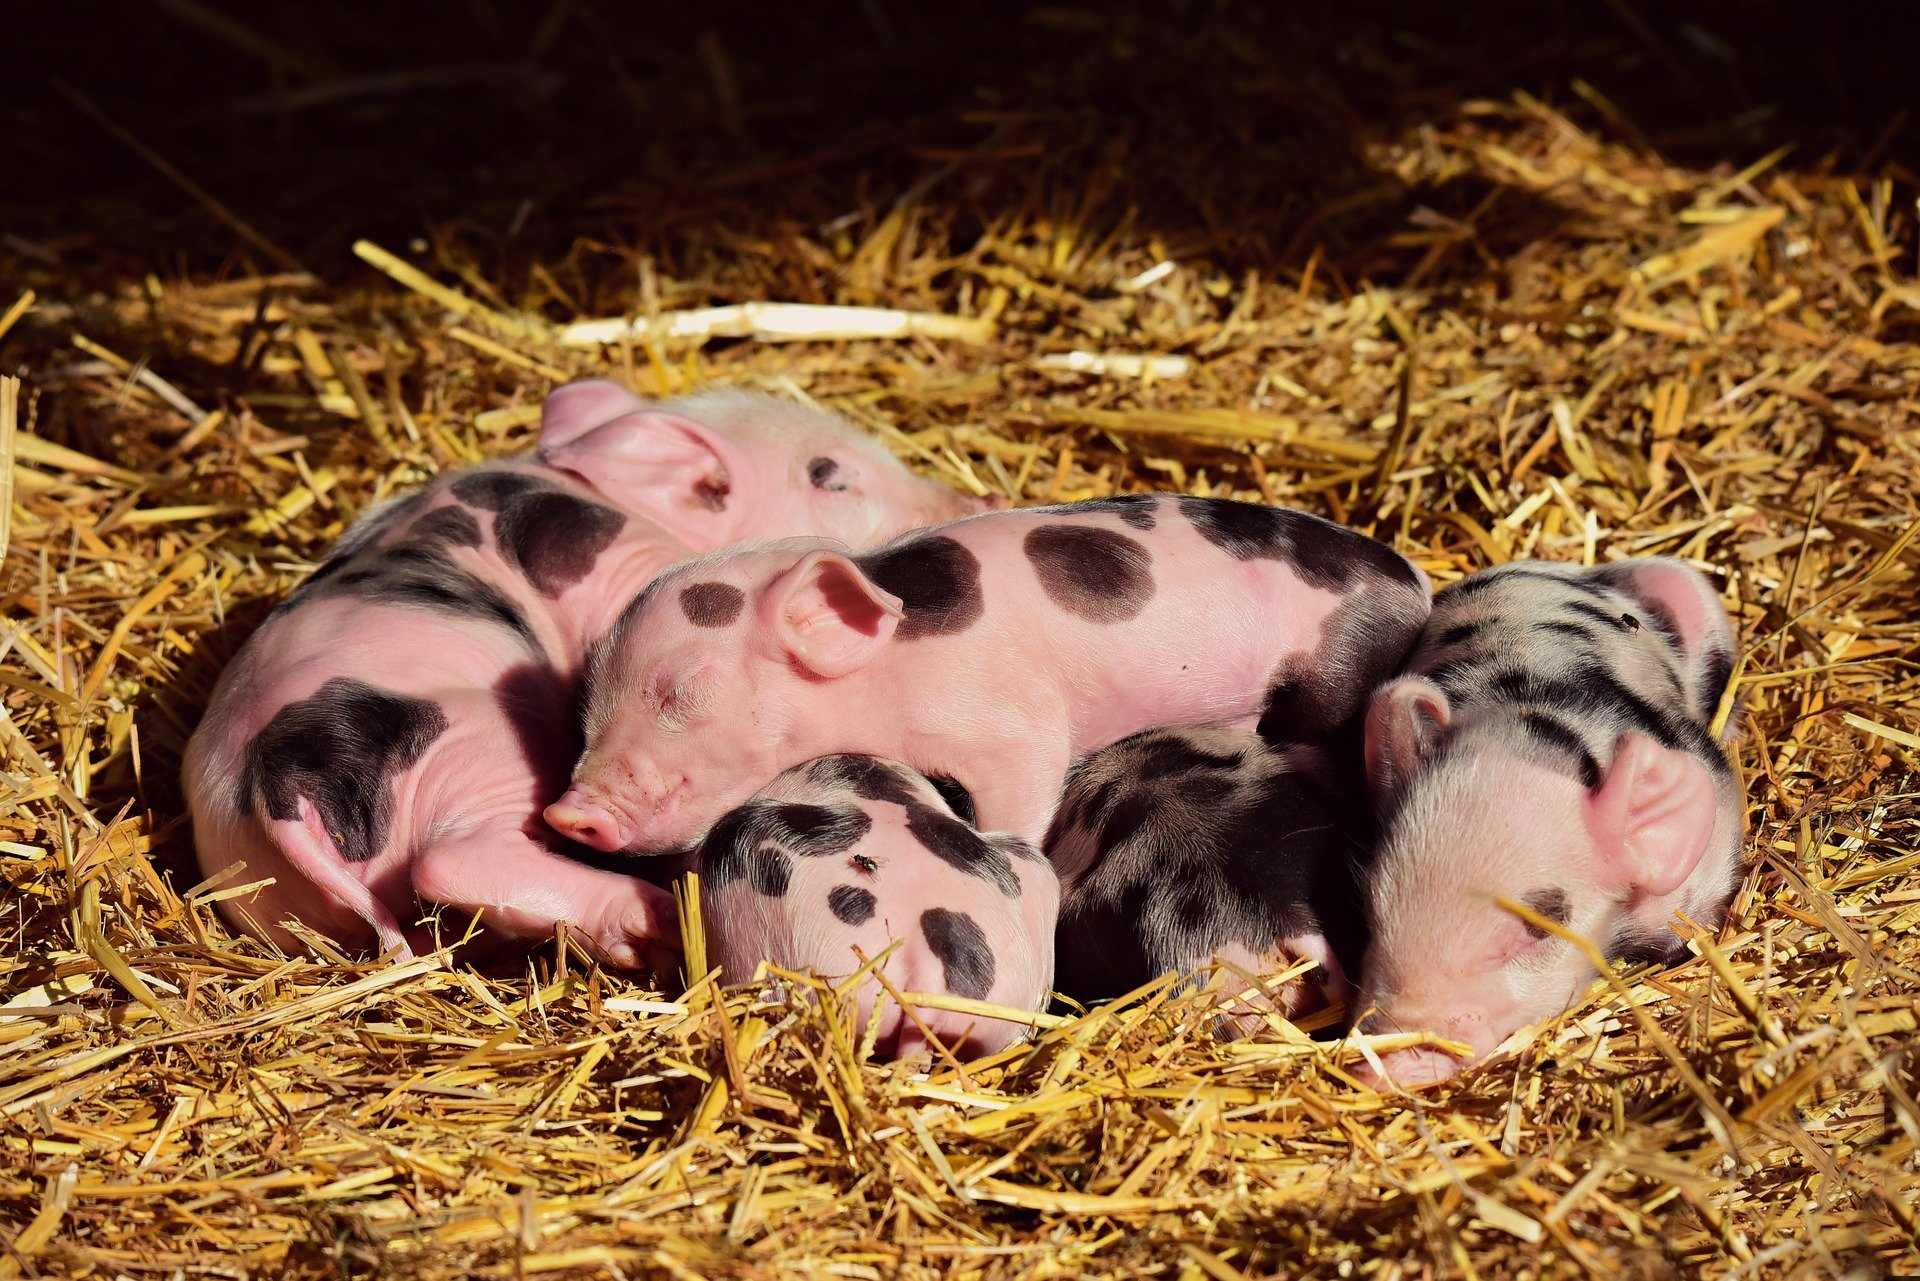 The next joke is about some adorable piglets! | Photo: Pixabay/ Mabel Amber, who will one day